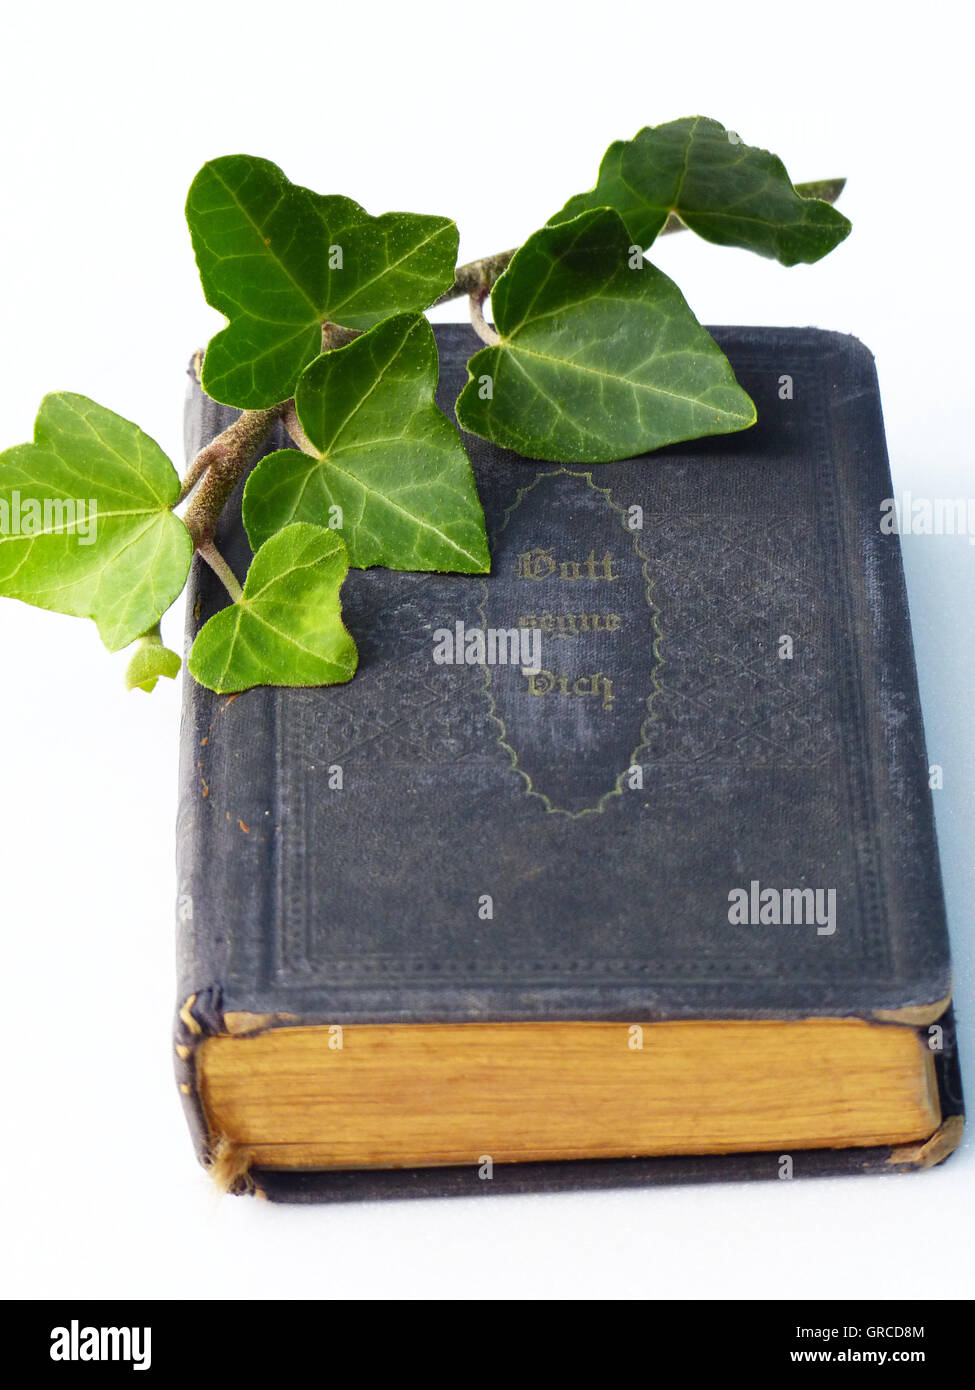 The Bible With An Ivy Twig - Stock Image